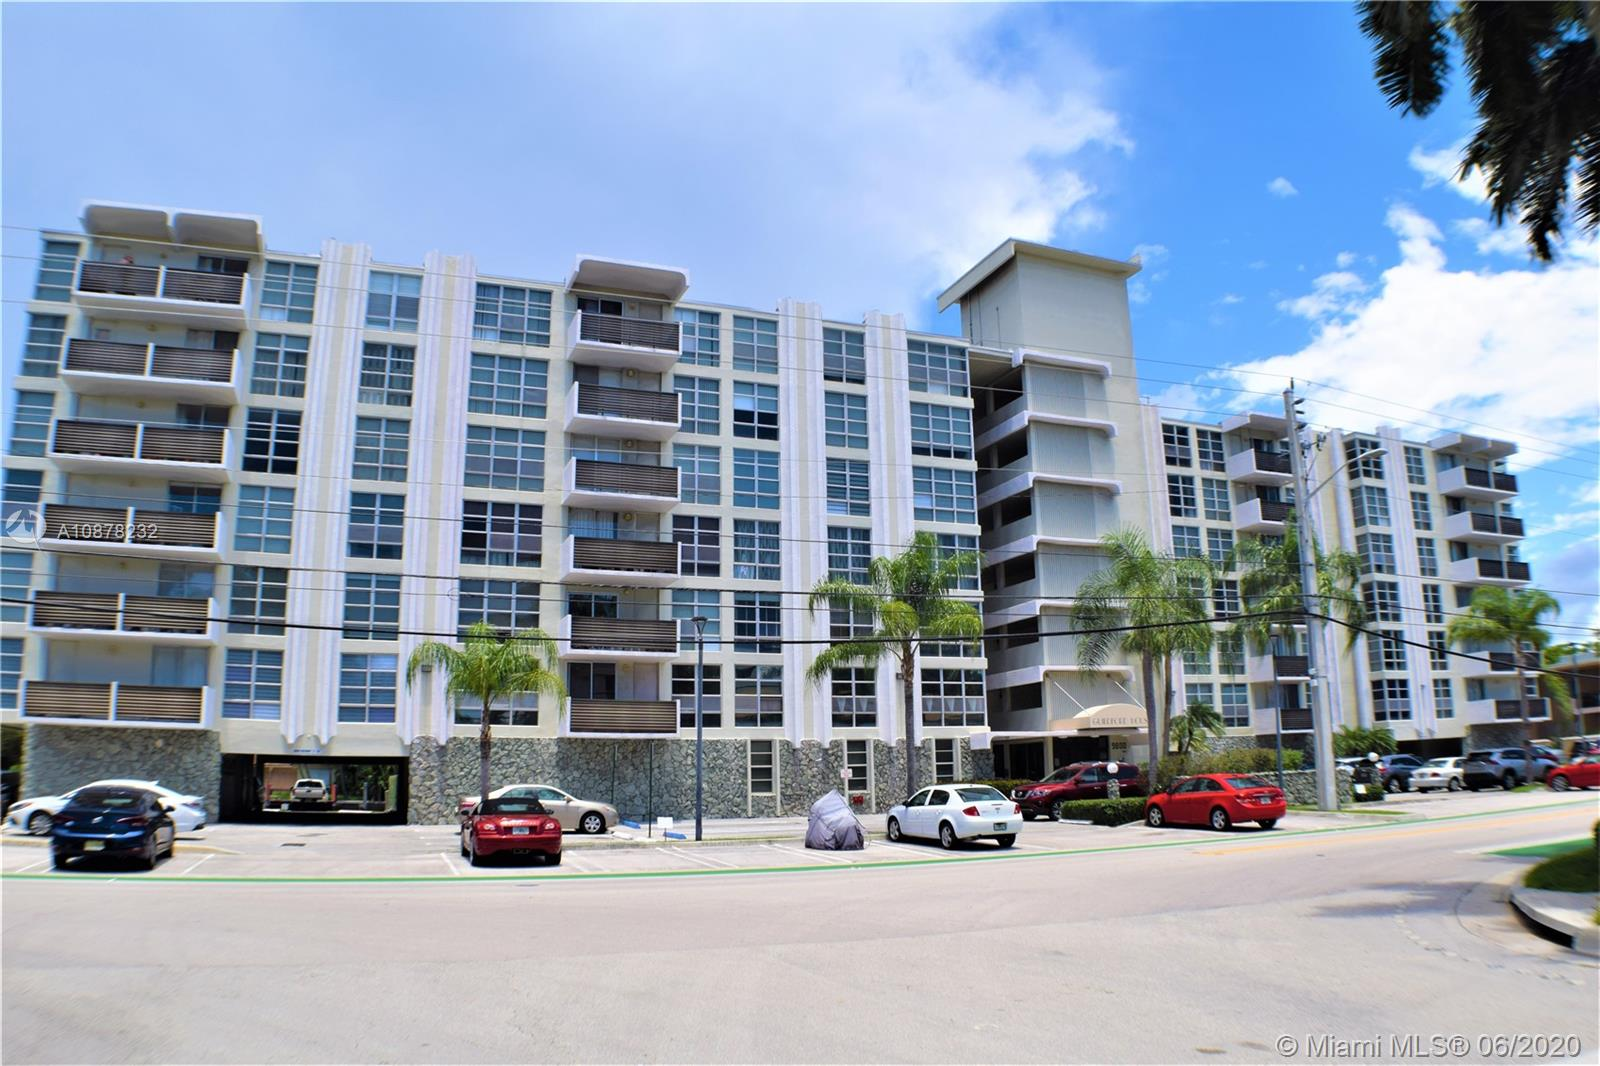 9800 W BAY HARBOR DR #602 For Sale A10878232, FL